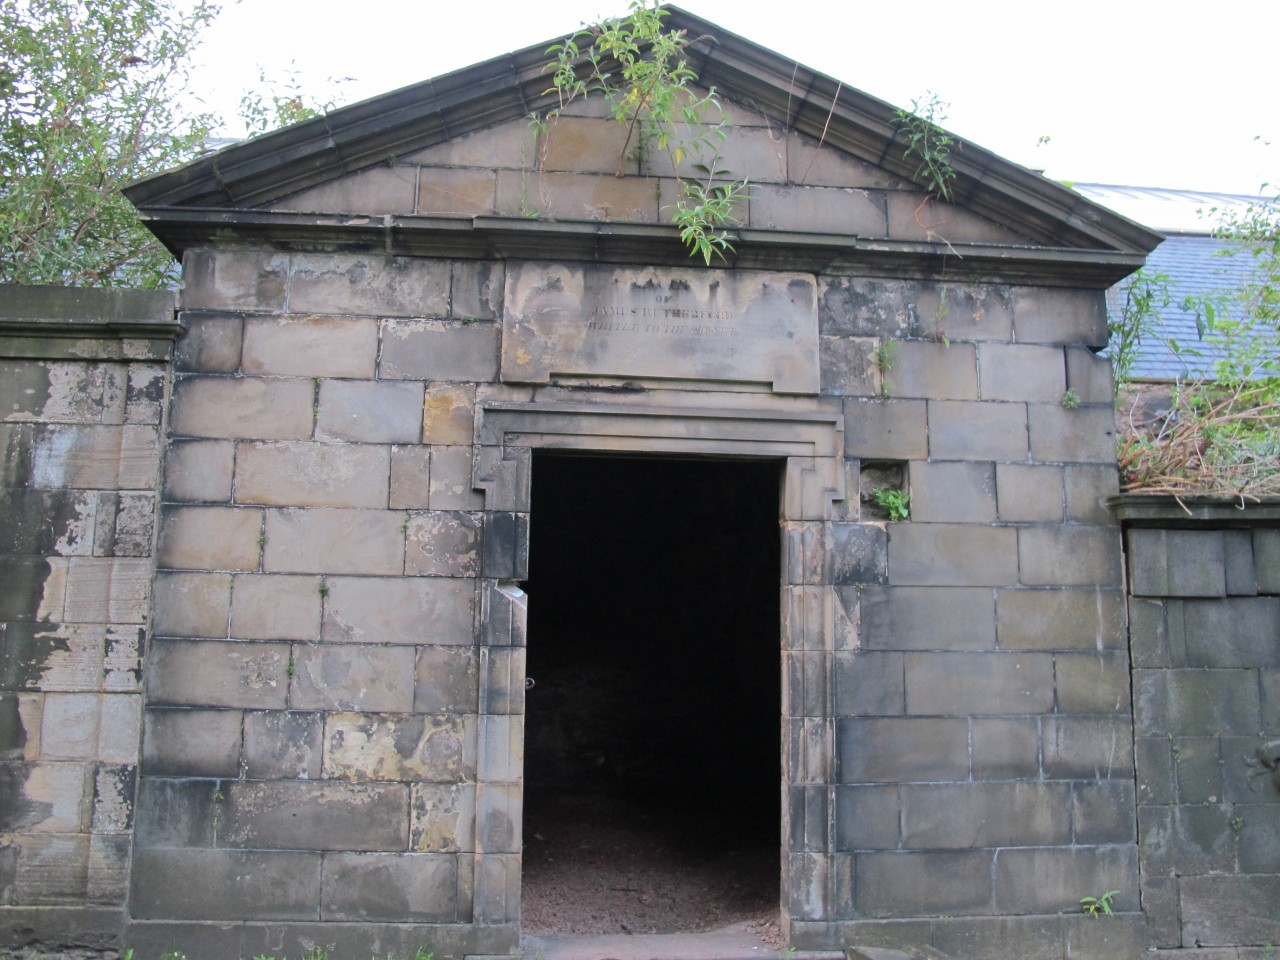 Tomb in Covenanters' Prison where many of the attacks have taken place